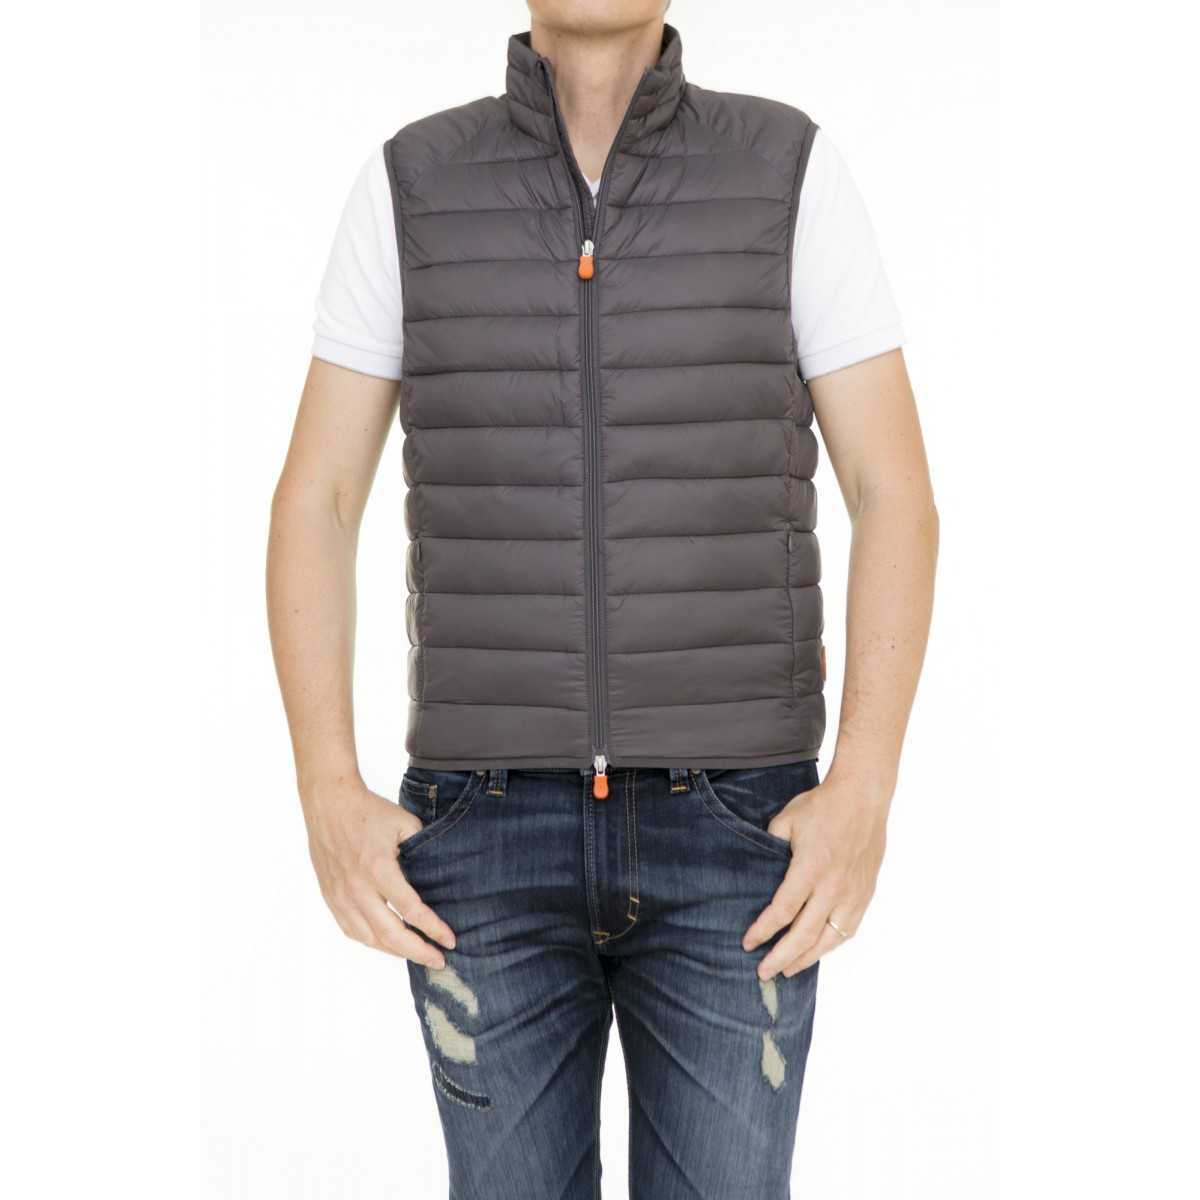 Piumino Save the duck - D8241m giga3 gilet